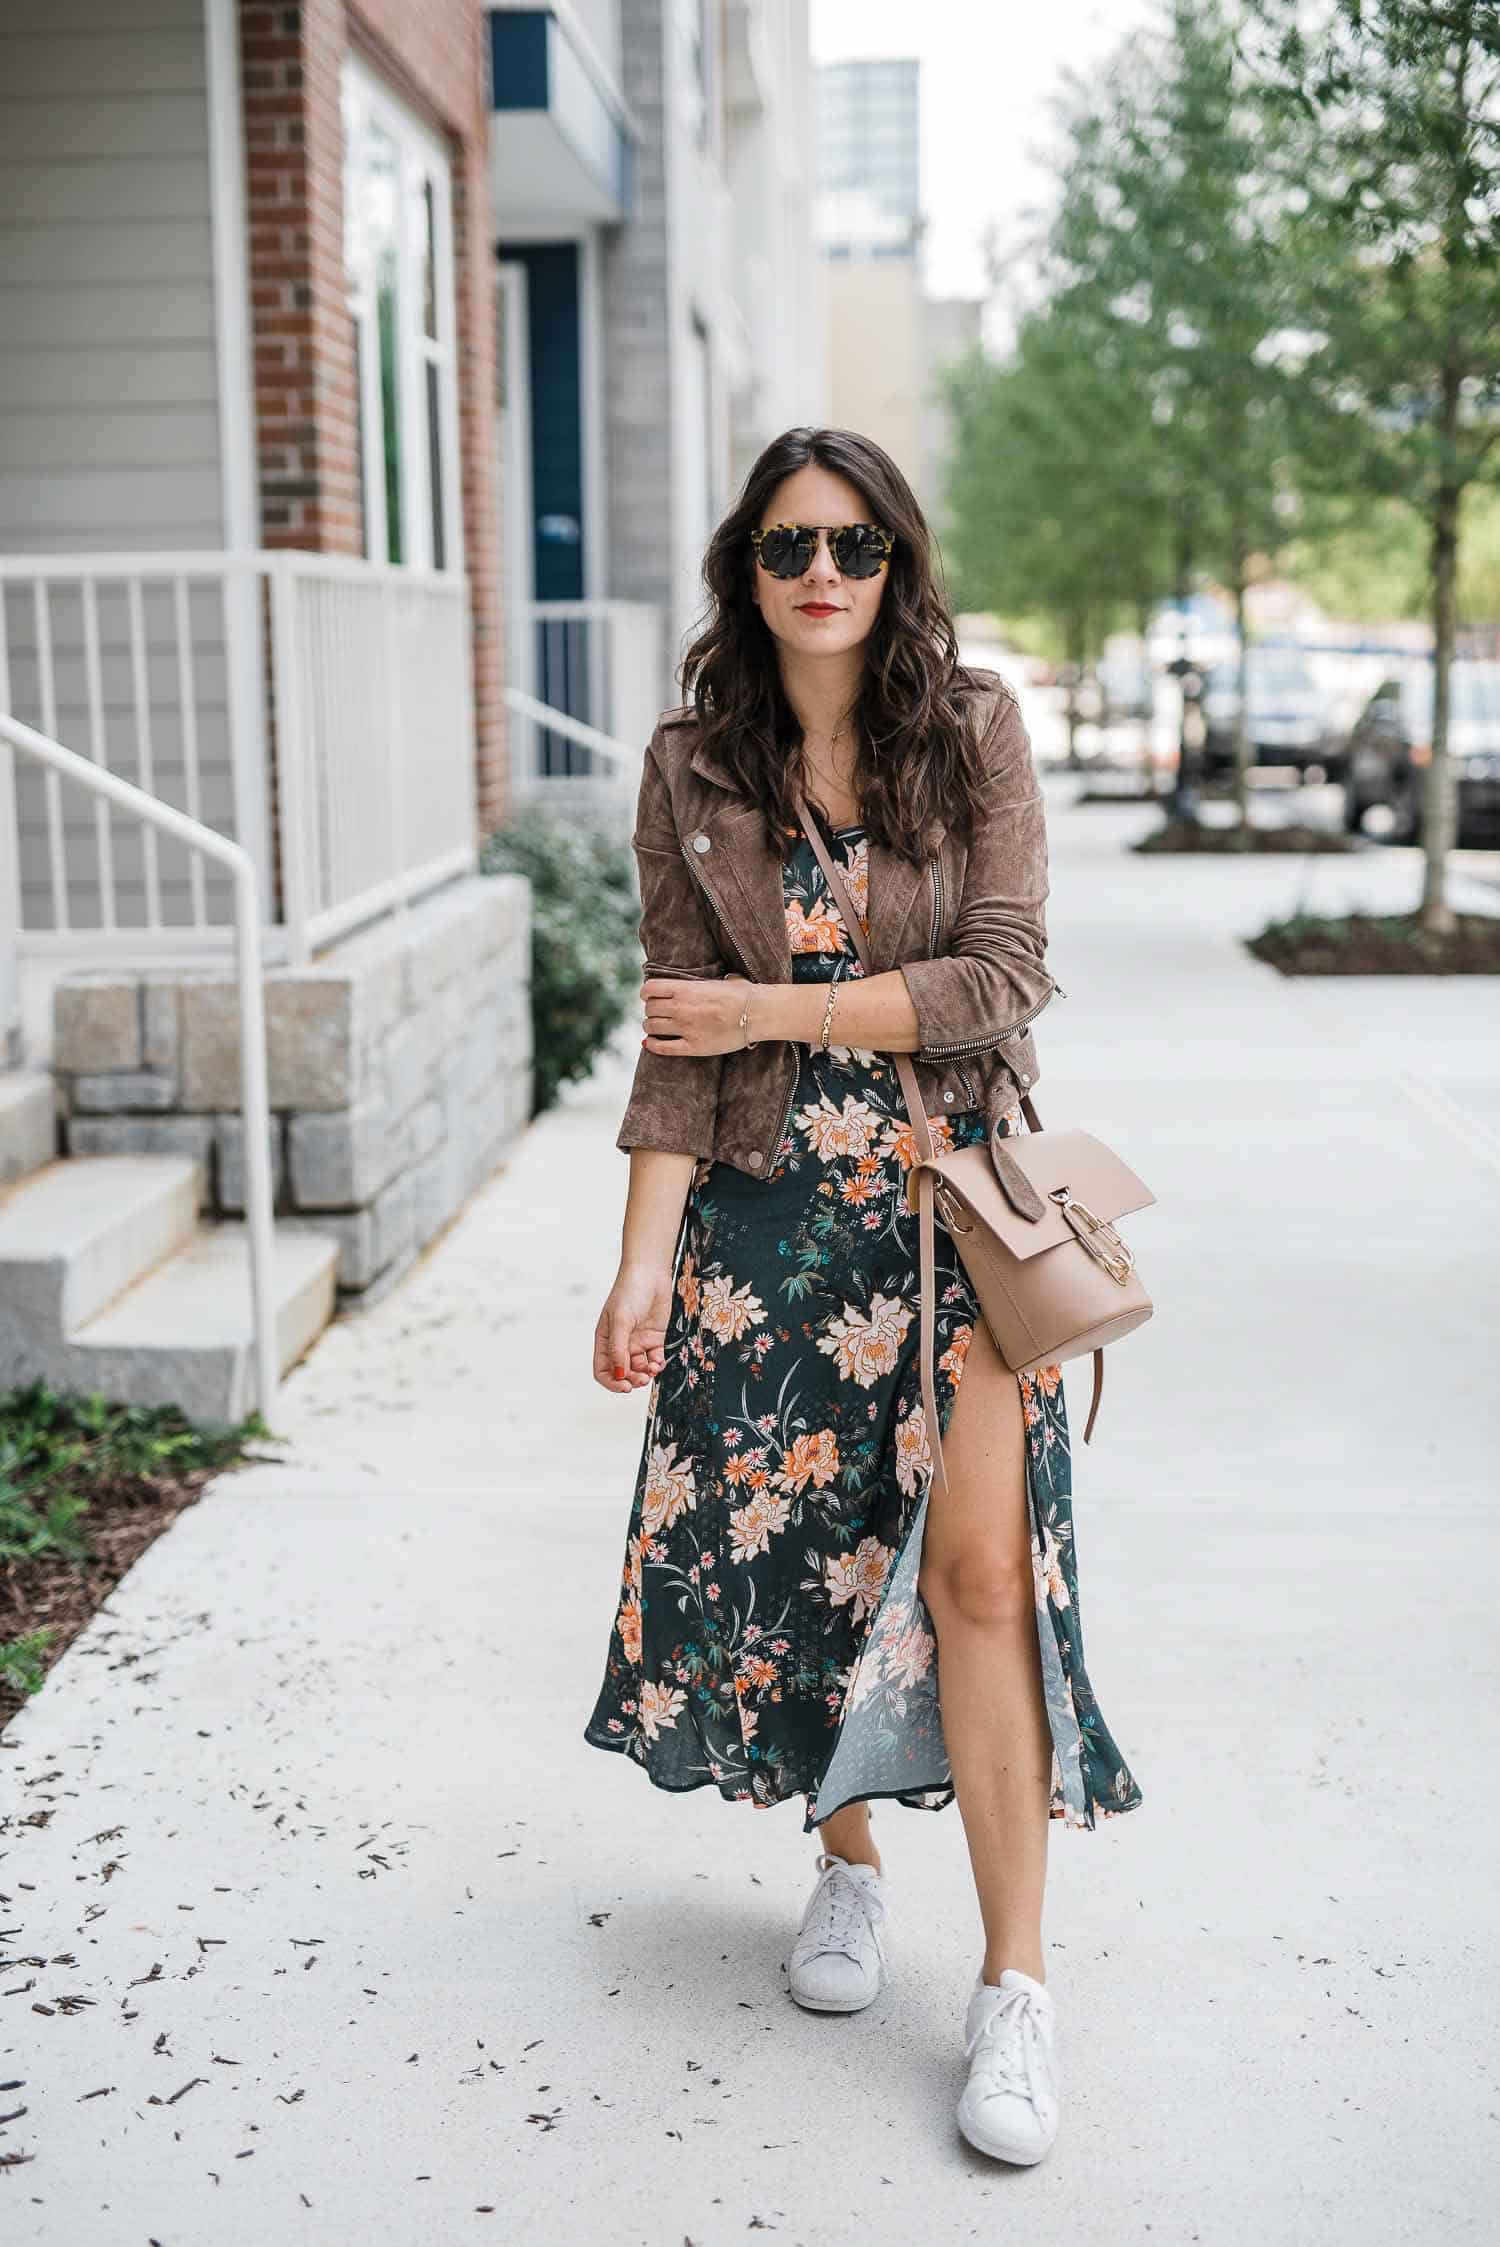 The Versatile Maxi Dress I Packed For Europe My Style Vita